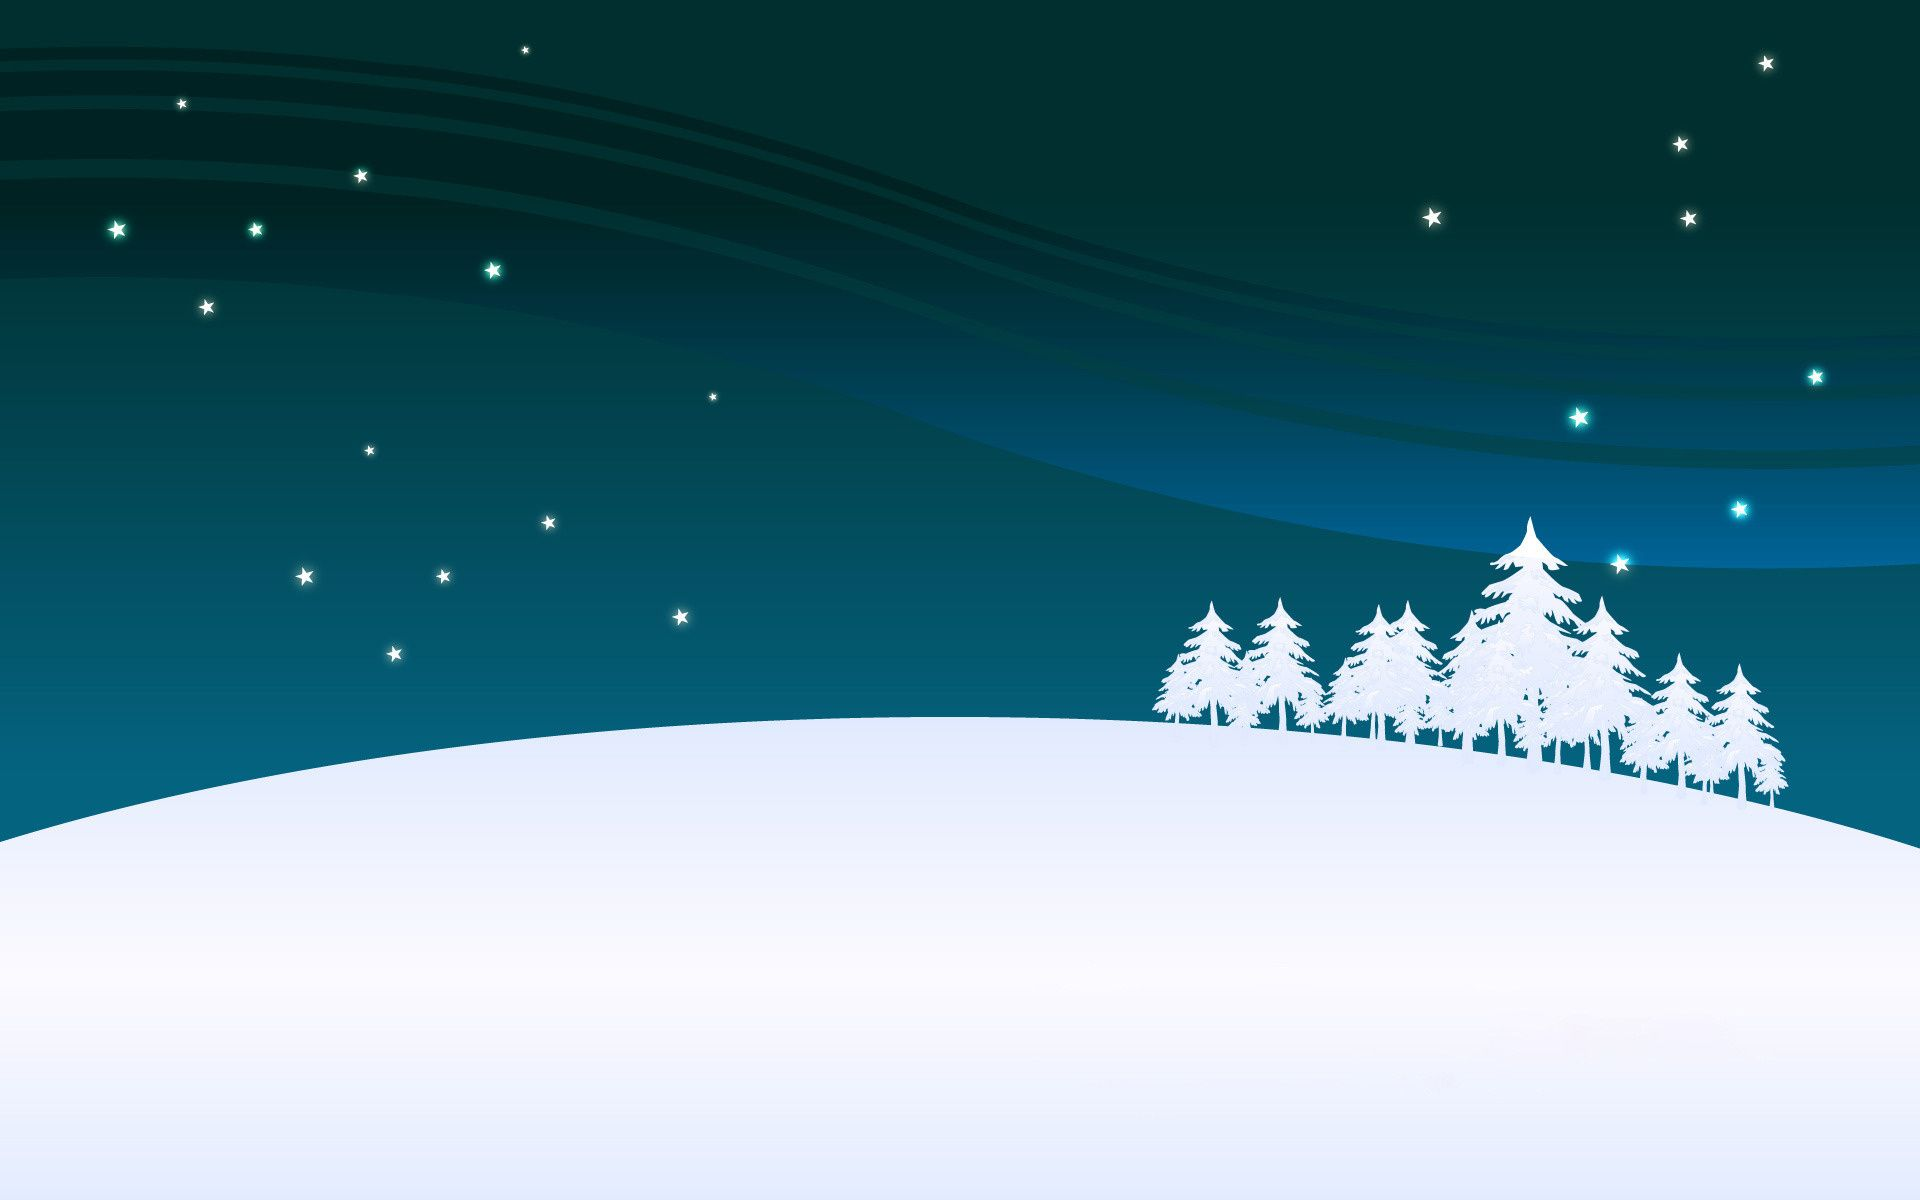 winter holiday wallpaper - sf wallpaper